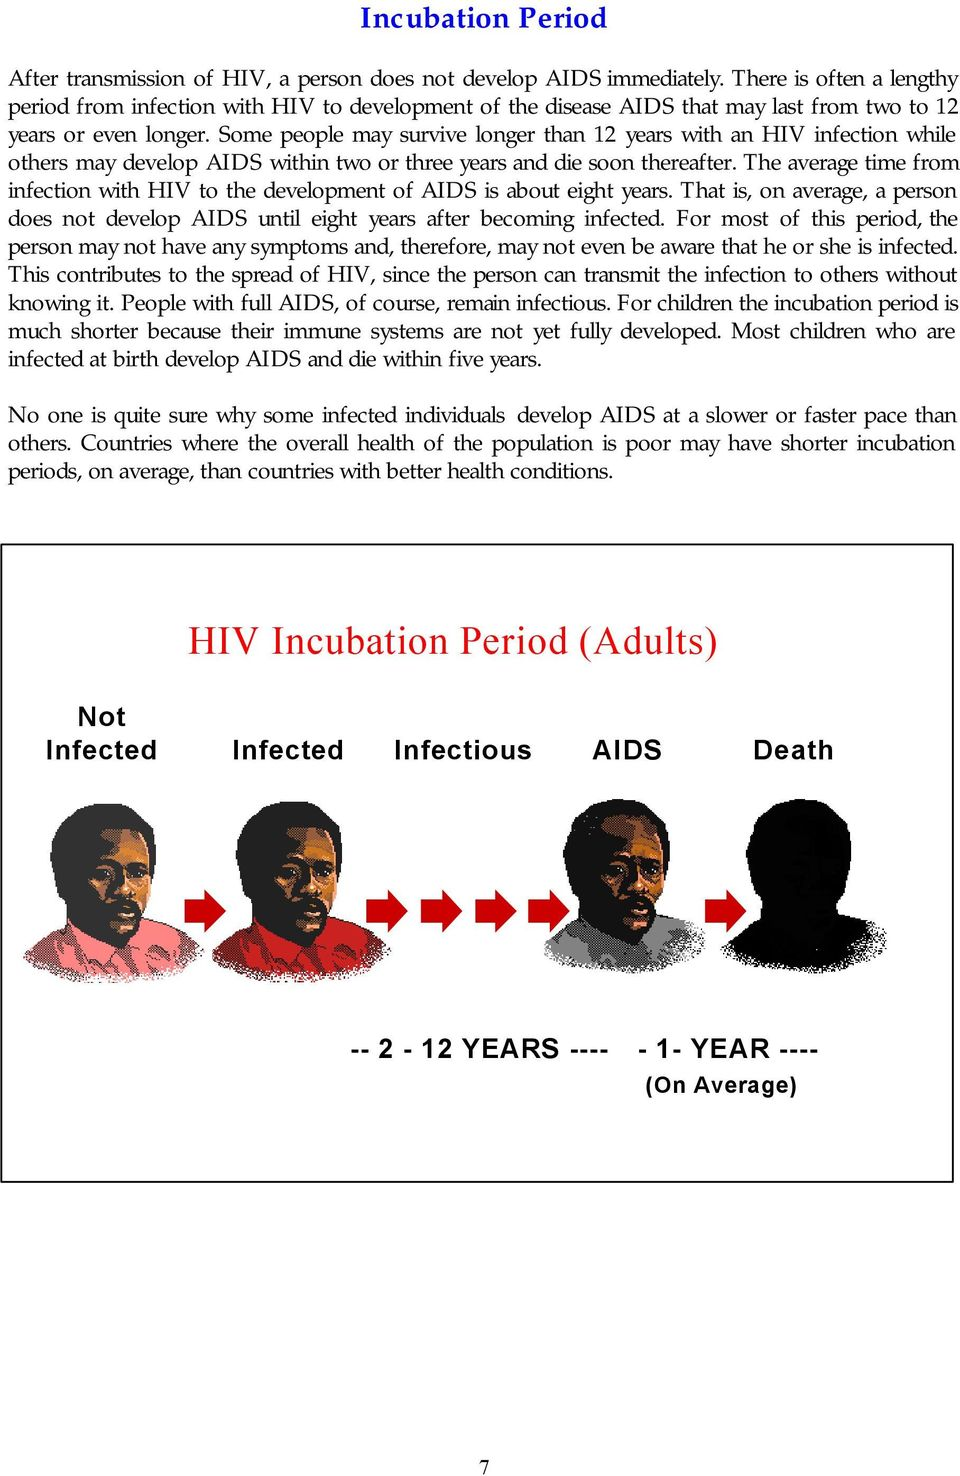 Some people may survive longer than 12 years with an HIV infection while others may develop AIDS within two or three years and die soon thereafter.